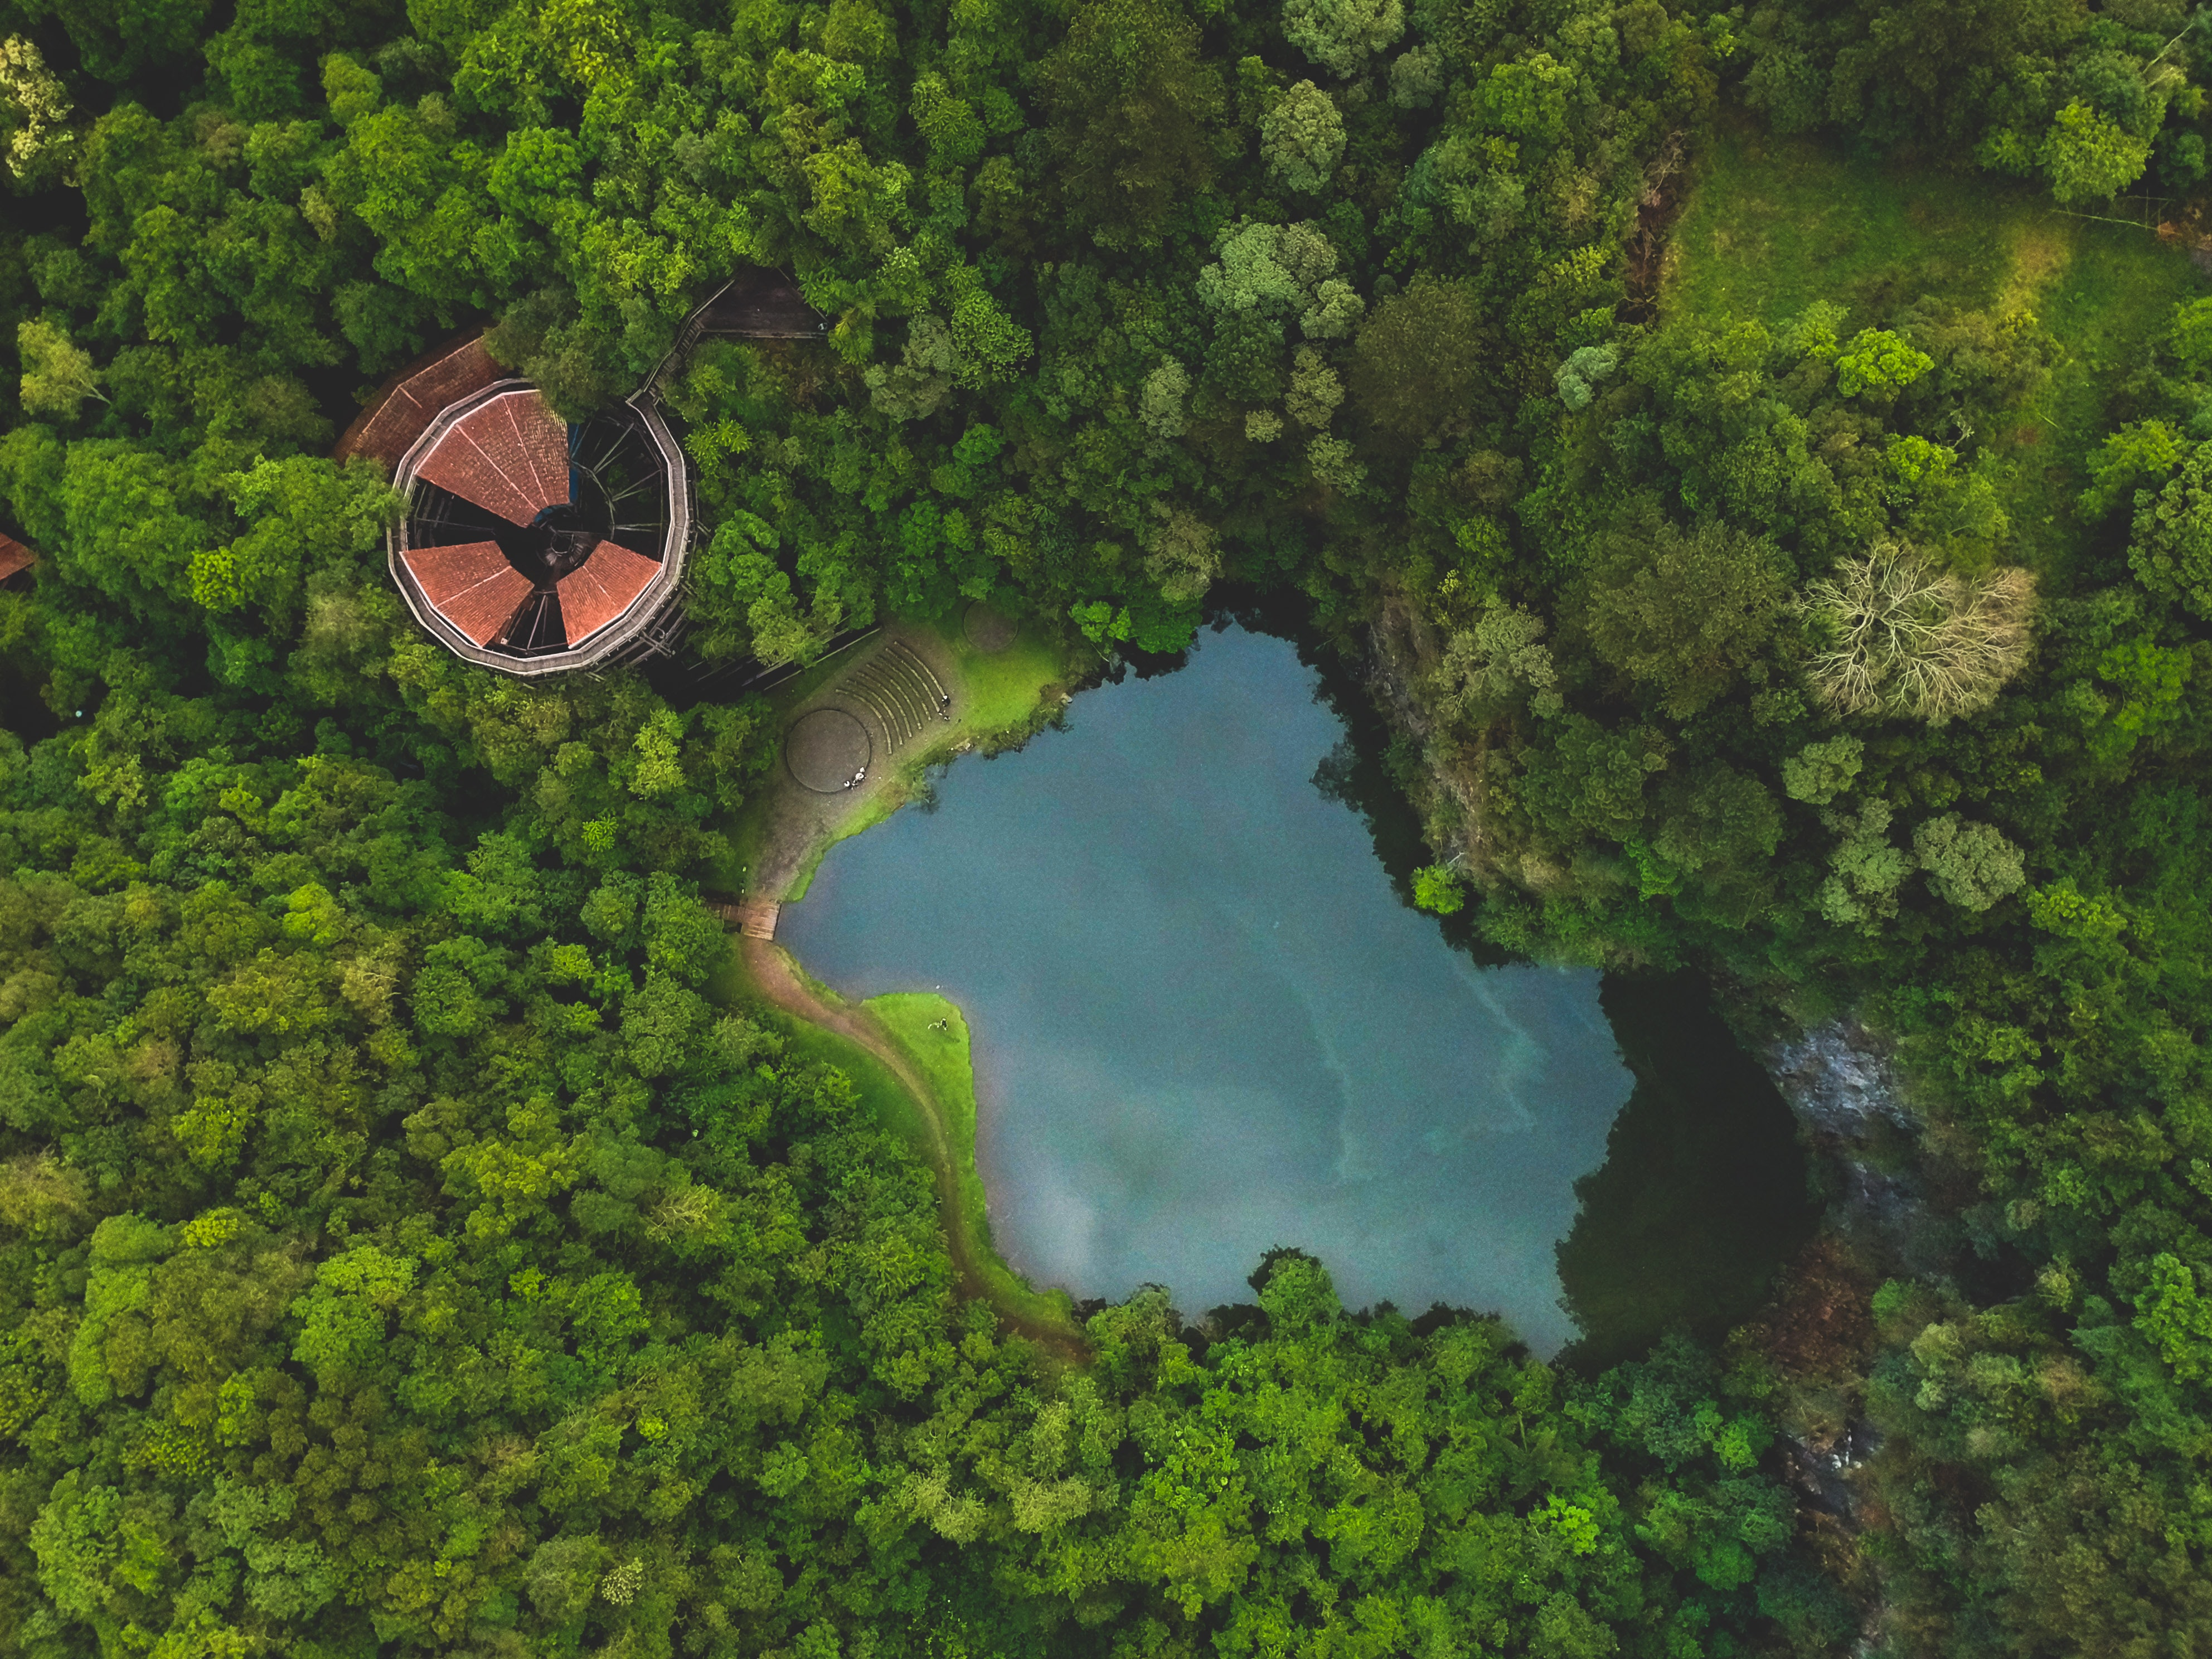 bird's eye photography of body of water and trees